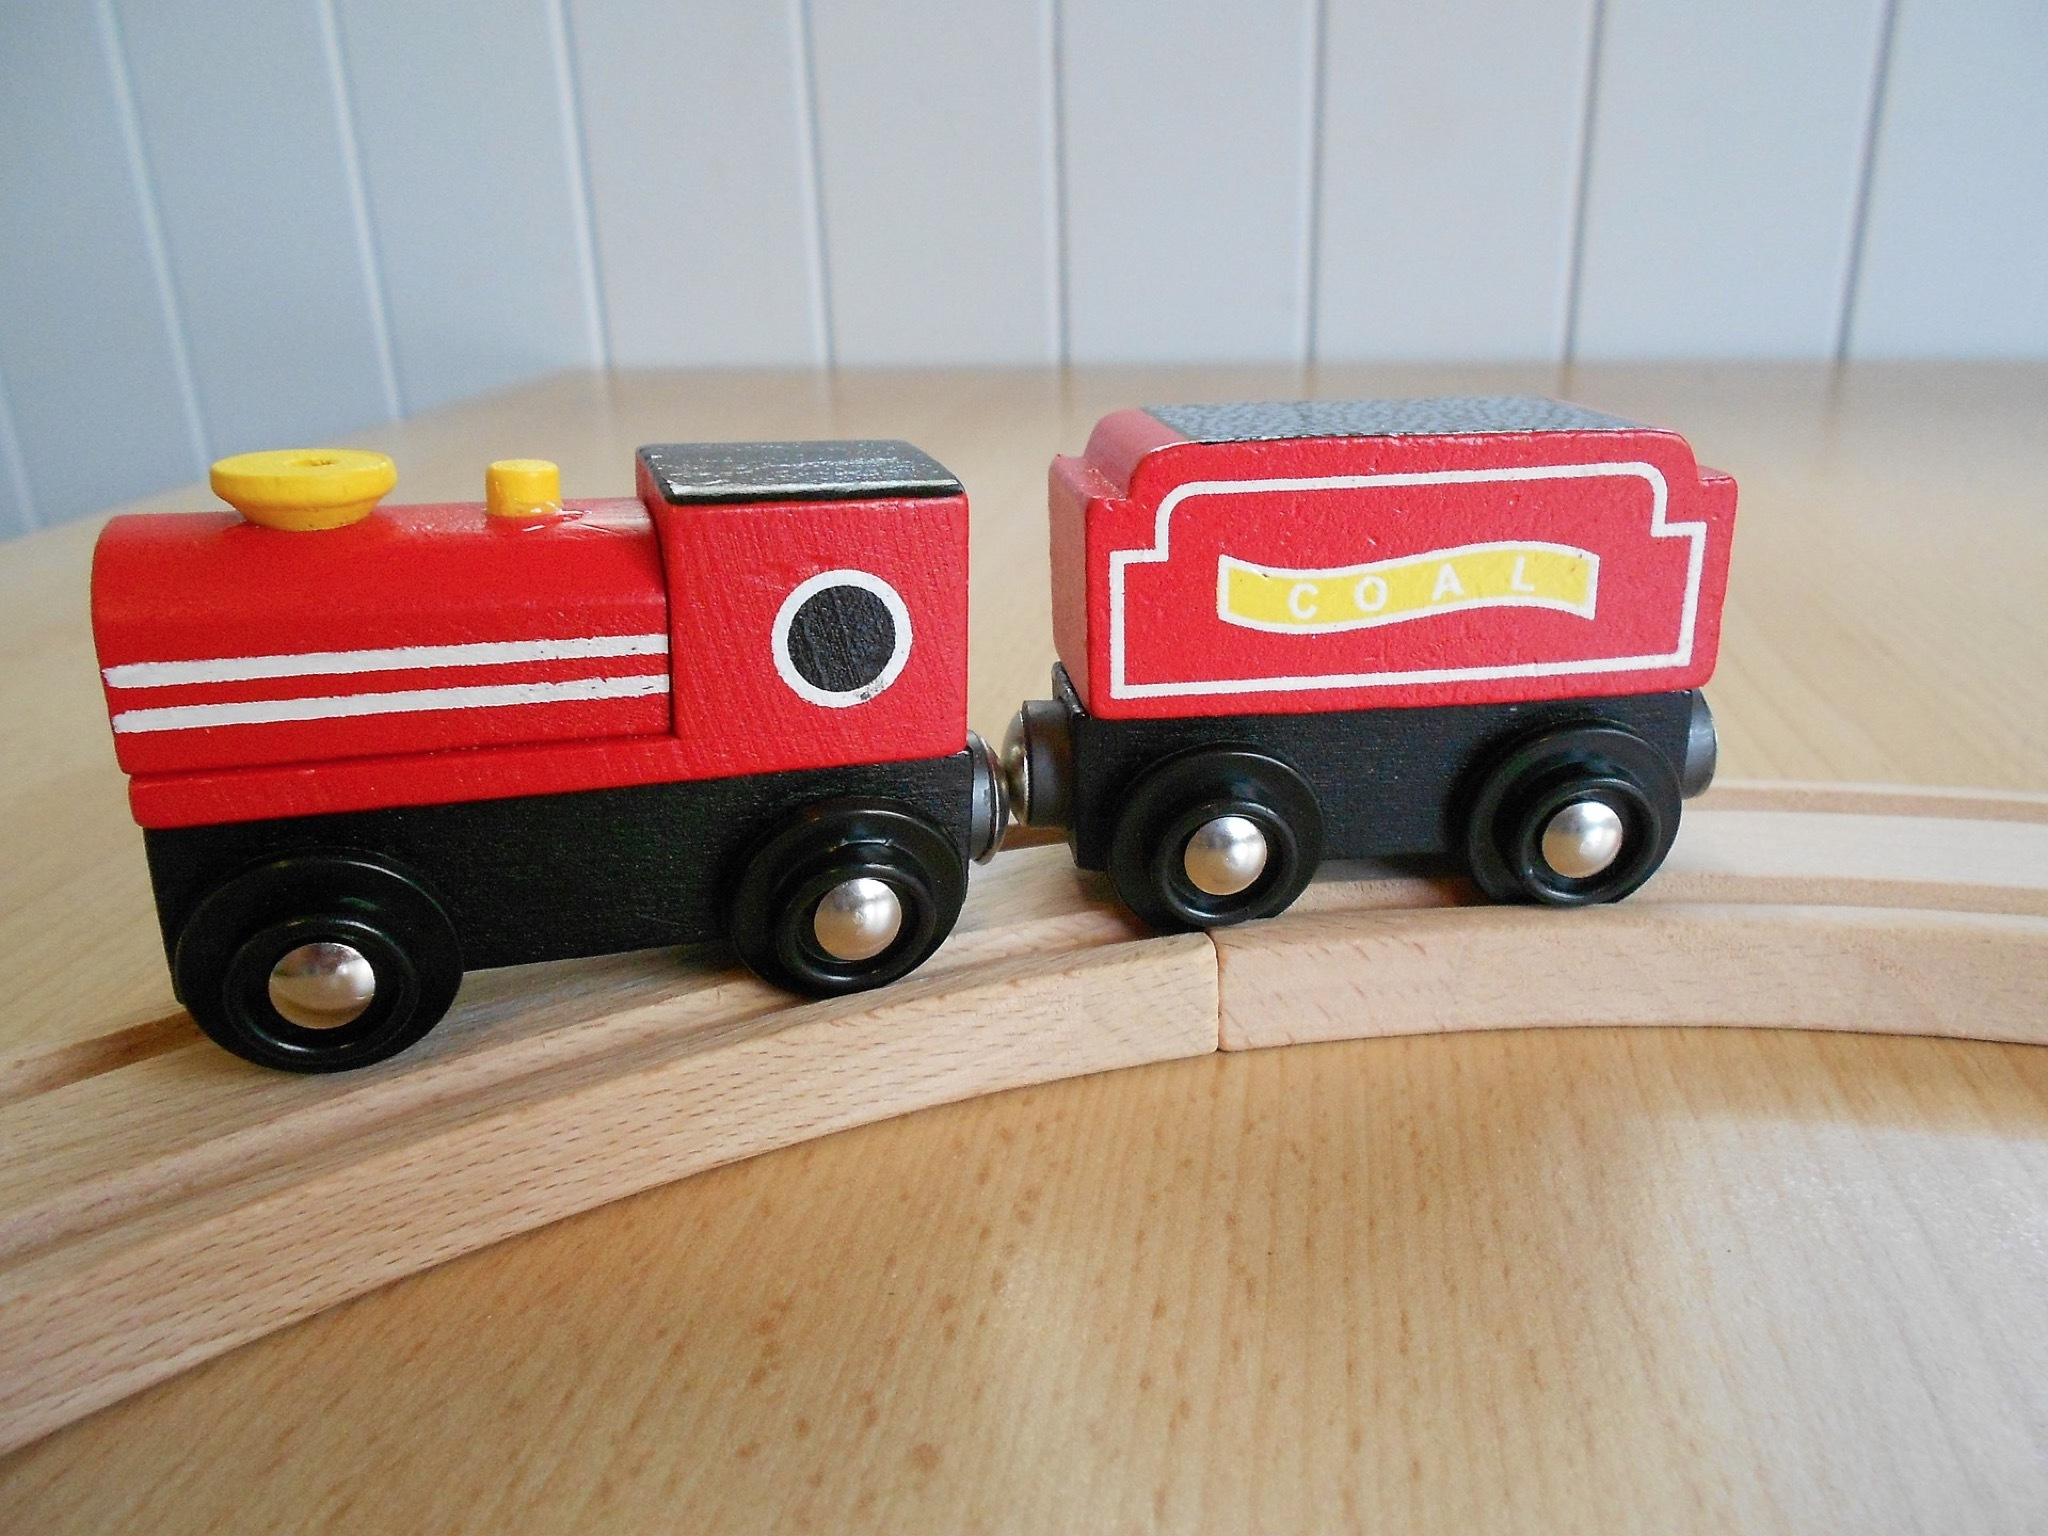 Generic toy wooden train